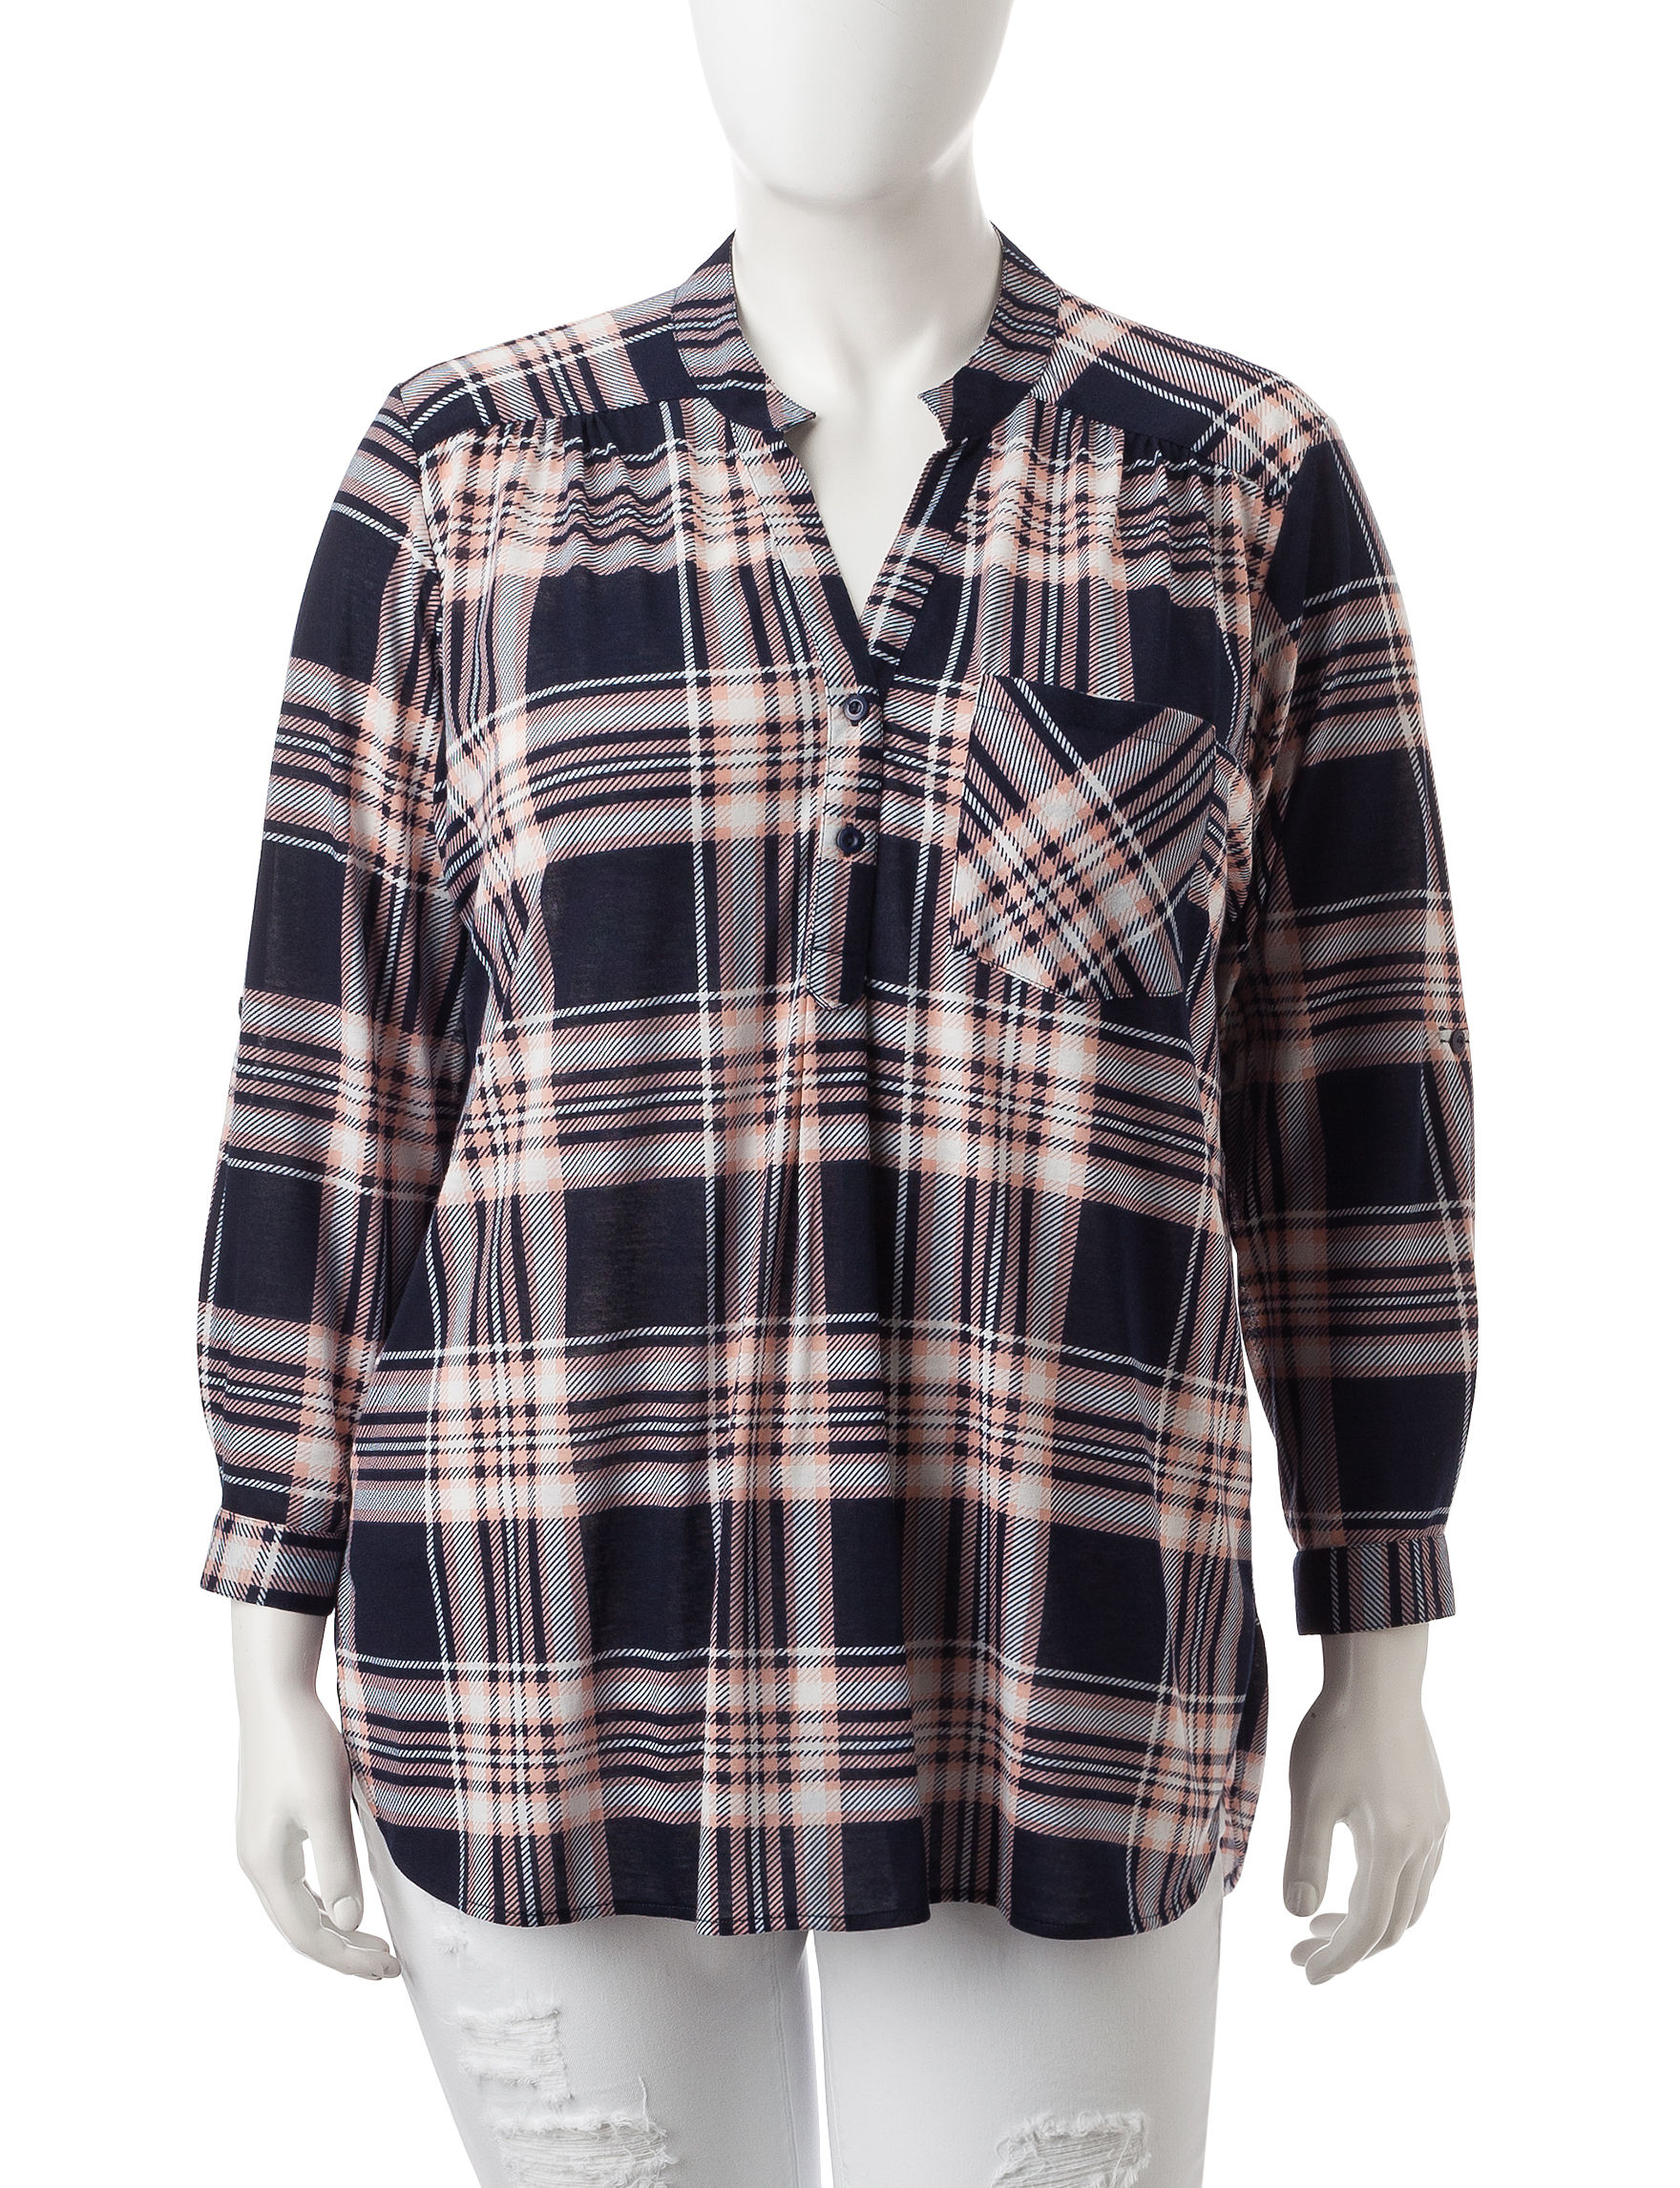 Justify Navy Plaid Pull-overs Shirts & Blouses